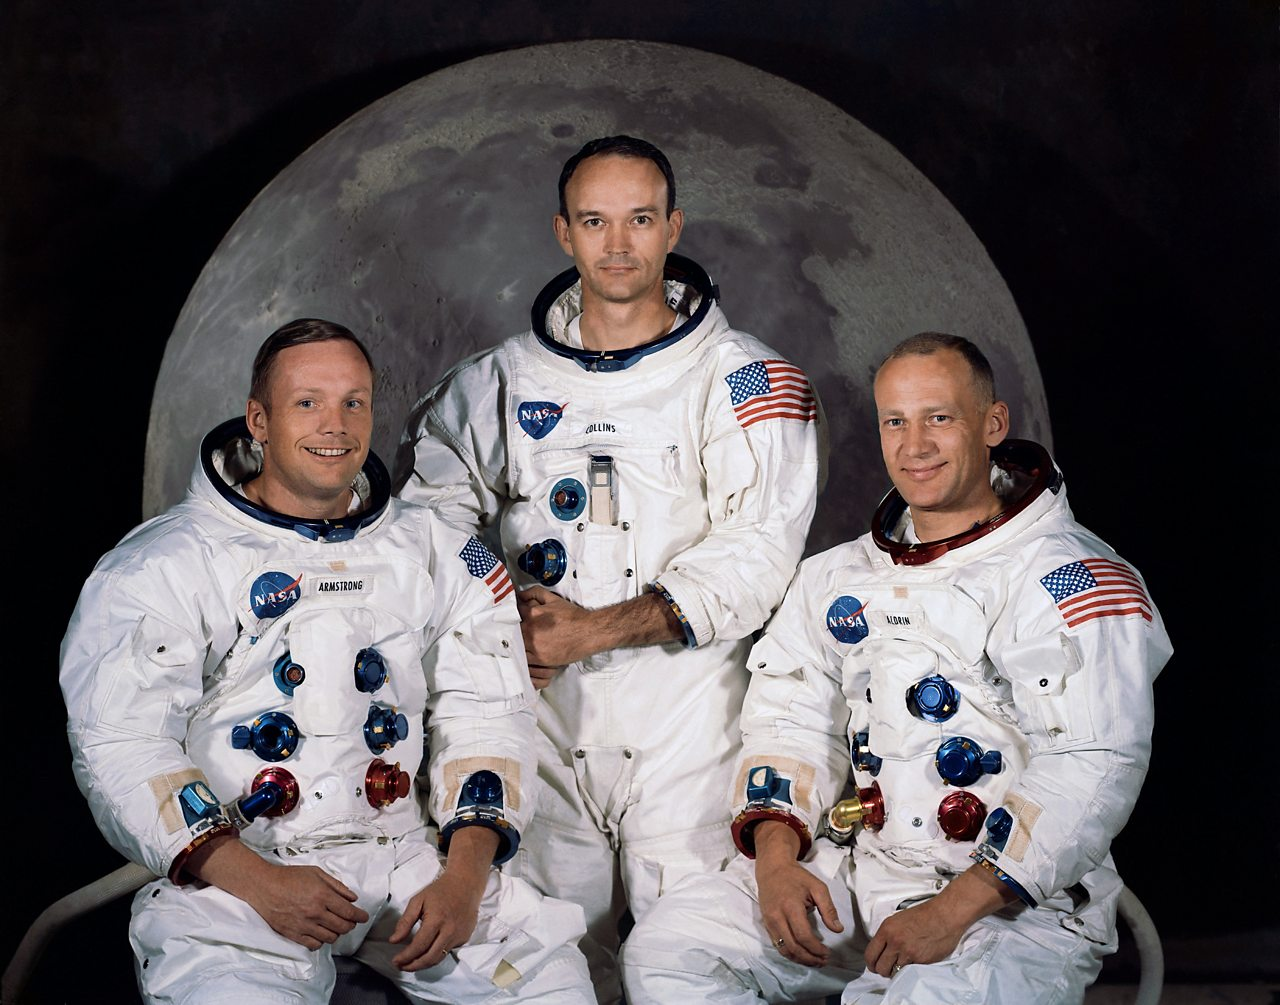 Introducing the Apollo 11 Crew: Left: Neil Armstrong (commander). Centre: Buzz Aldrin (lunar module pilot). Right: Michael Collins (command module pilot).